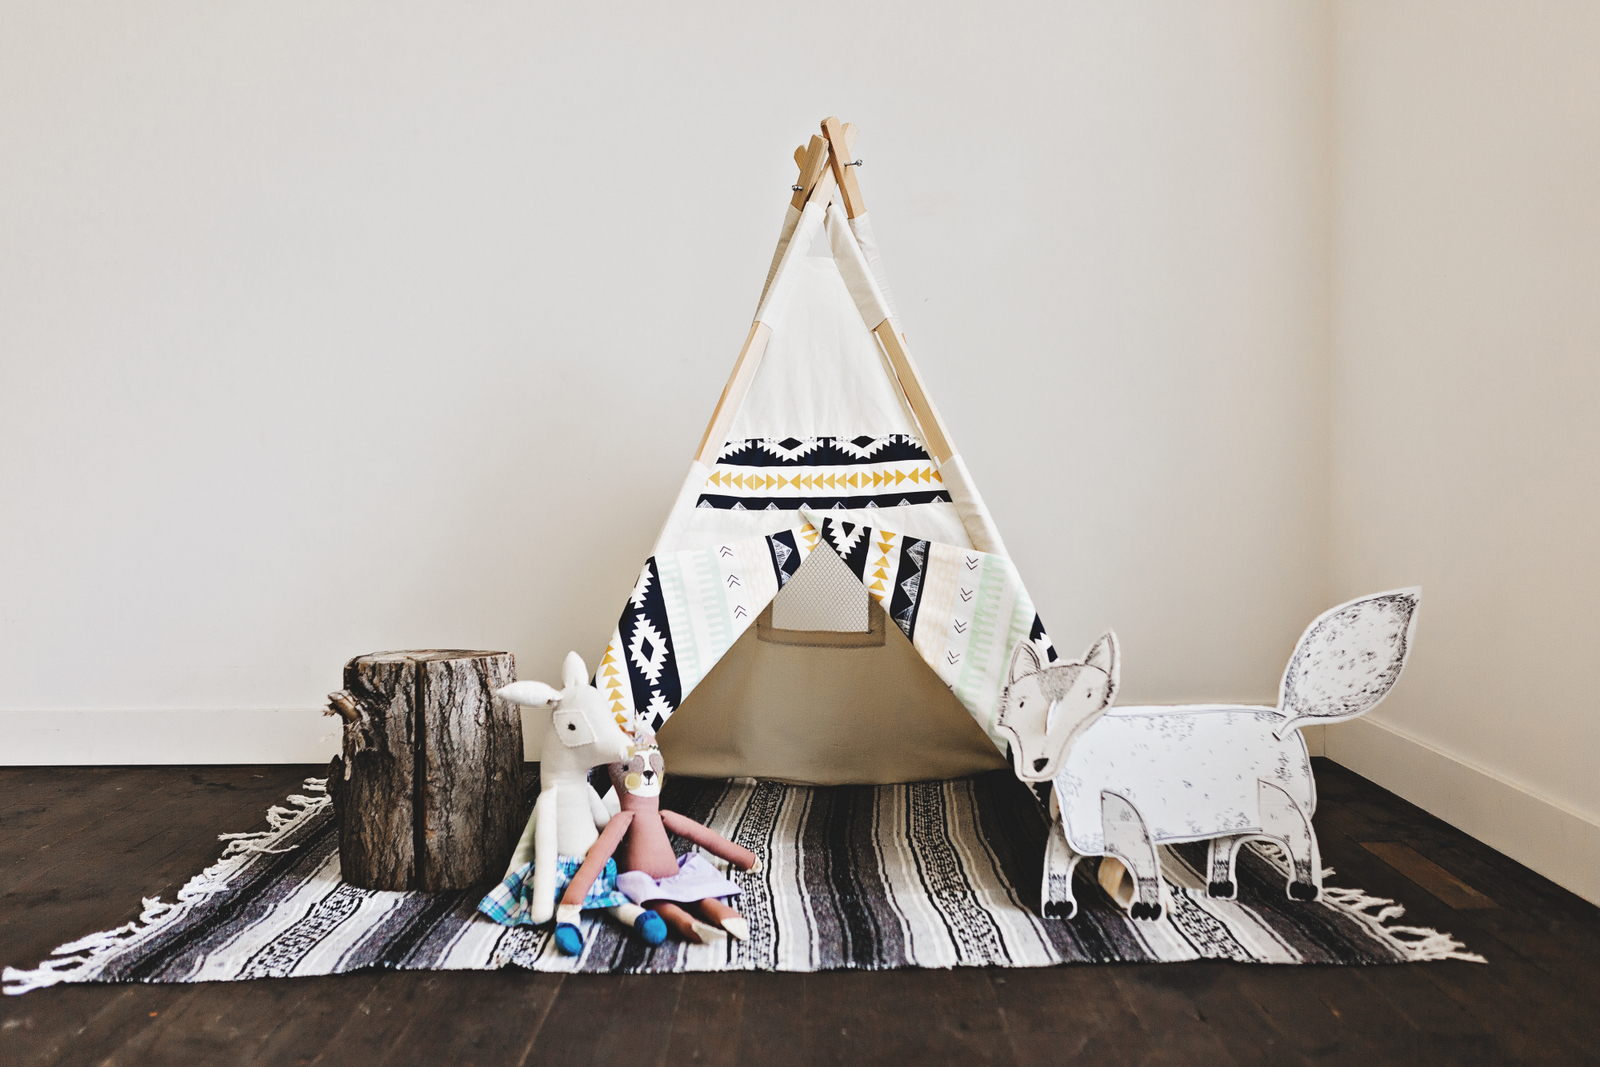 Tnees teepee and Spanglish Heart blanket